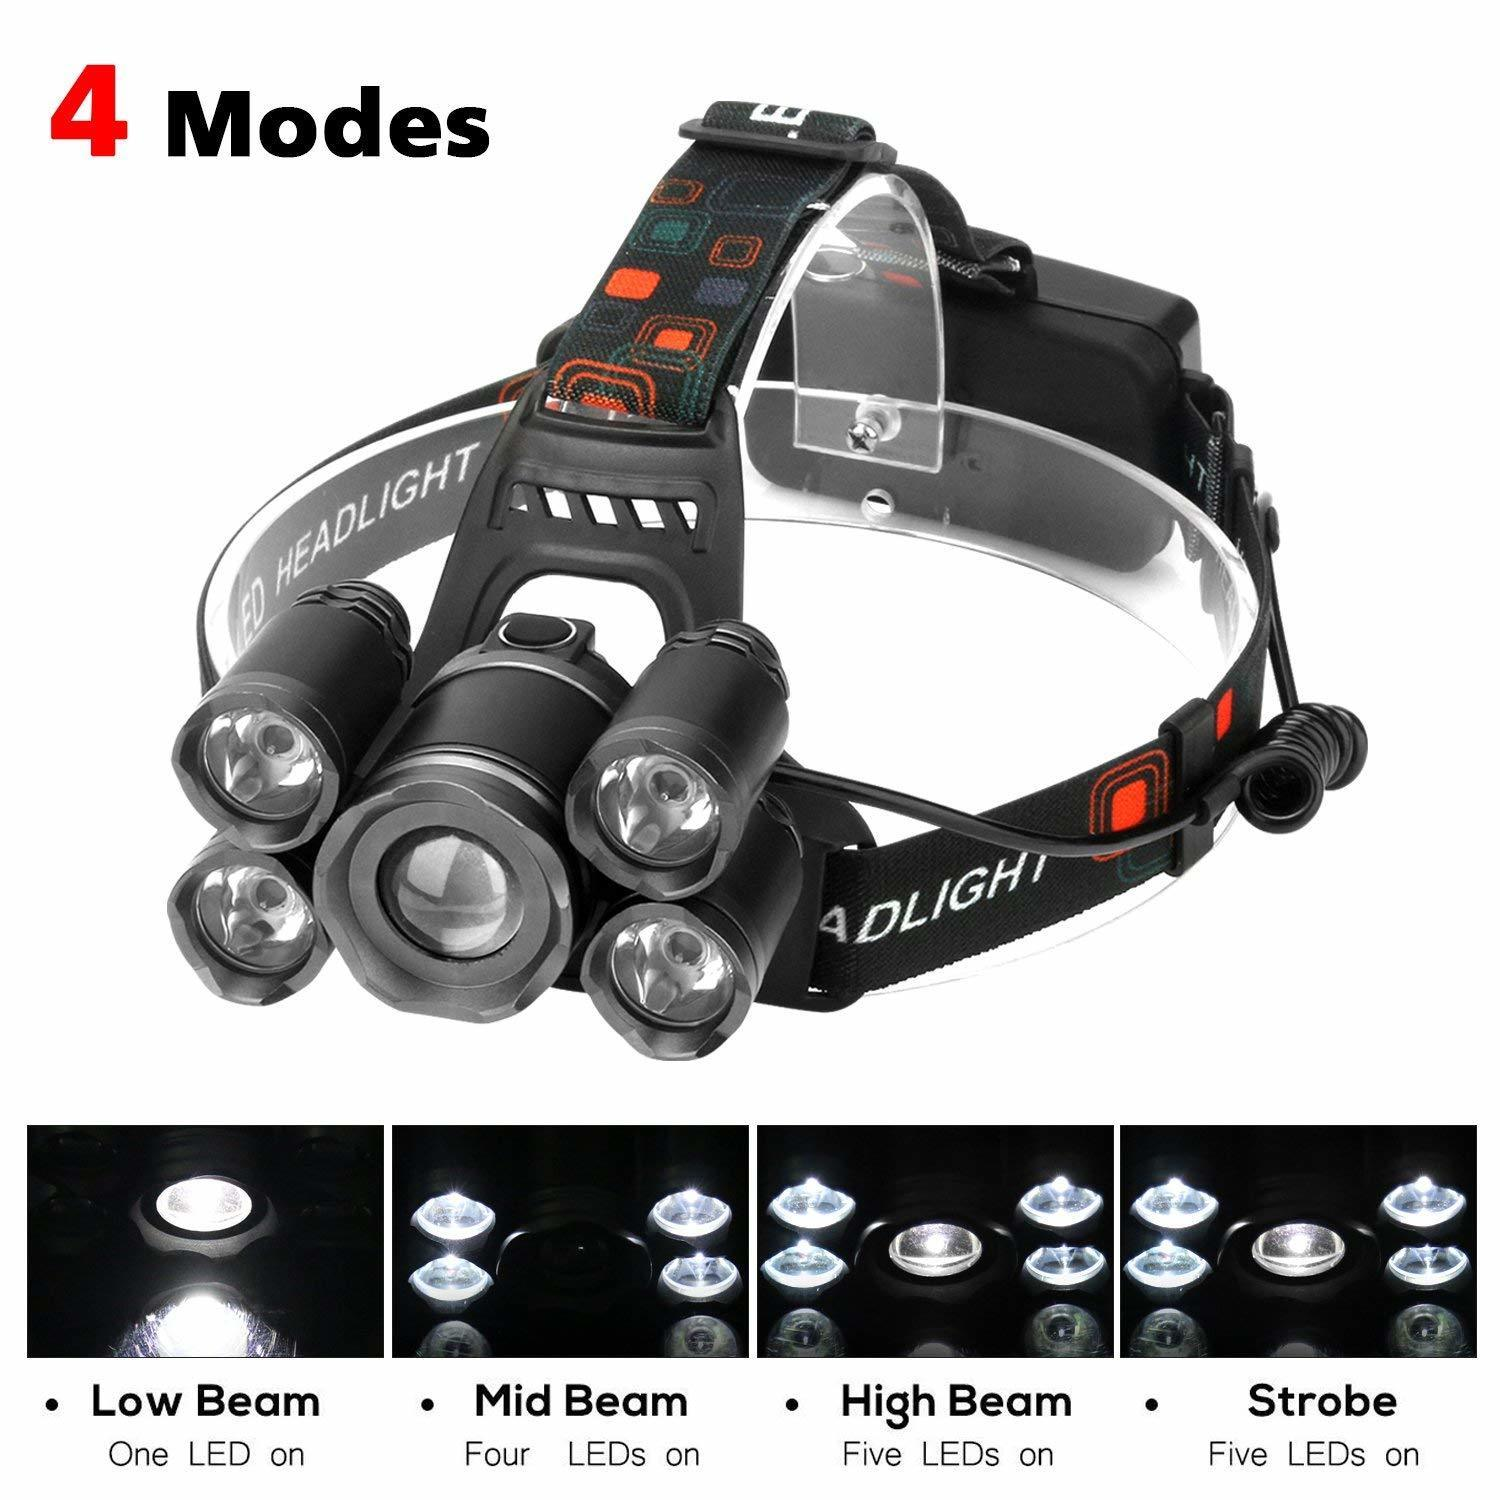 Neolight Rechargeable Zoomable Headlight